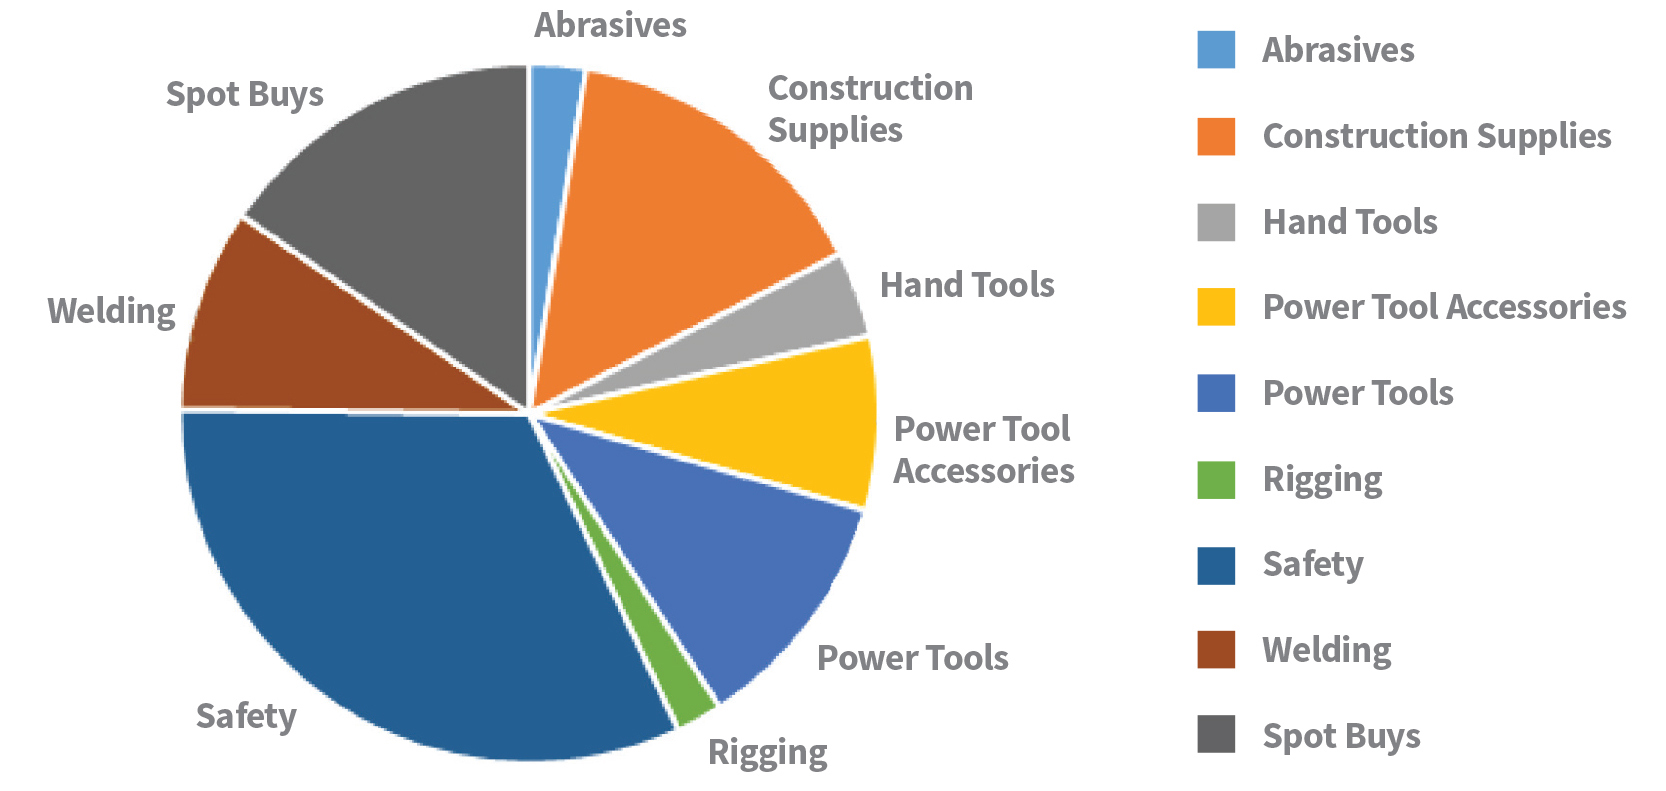 Custom Reporting On Demand Pi Supply Diagram Of Welding Tools Overall Spend By Category Chart